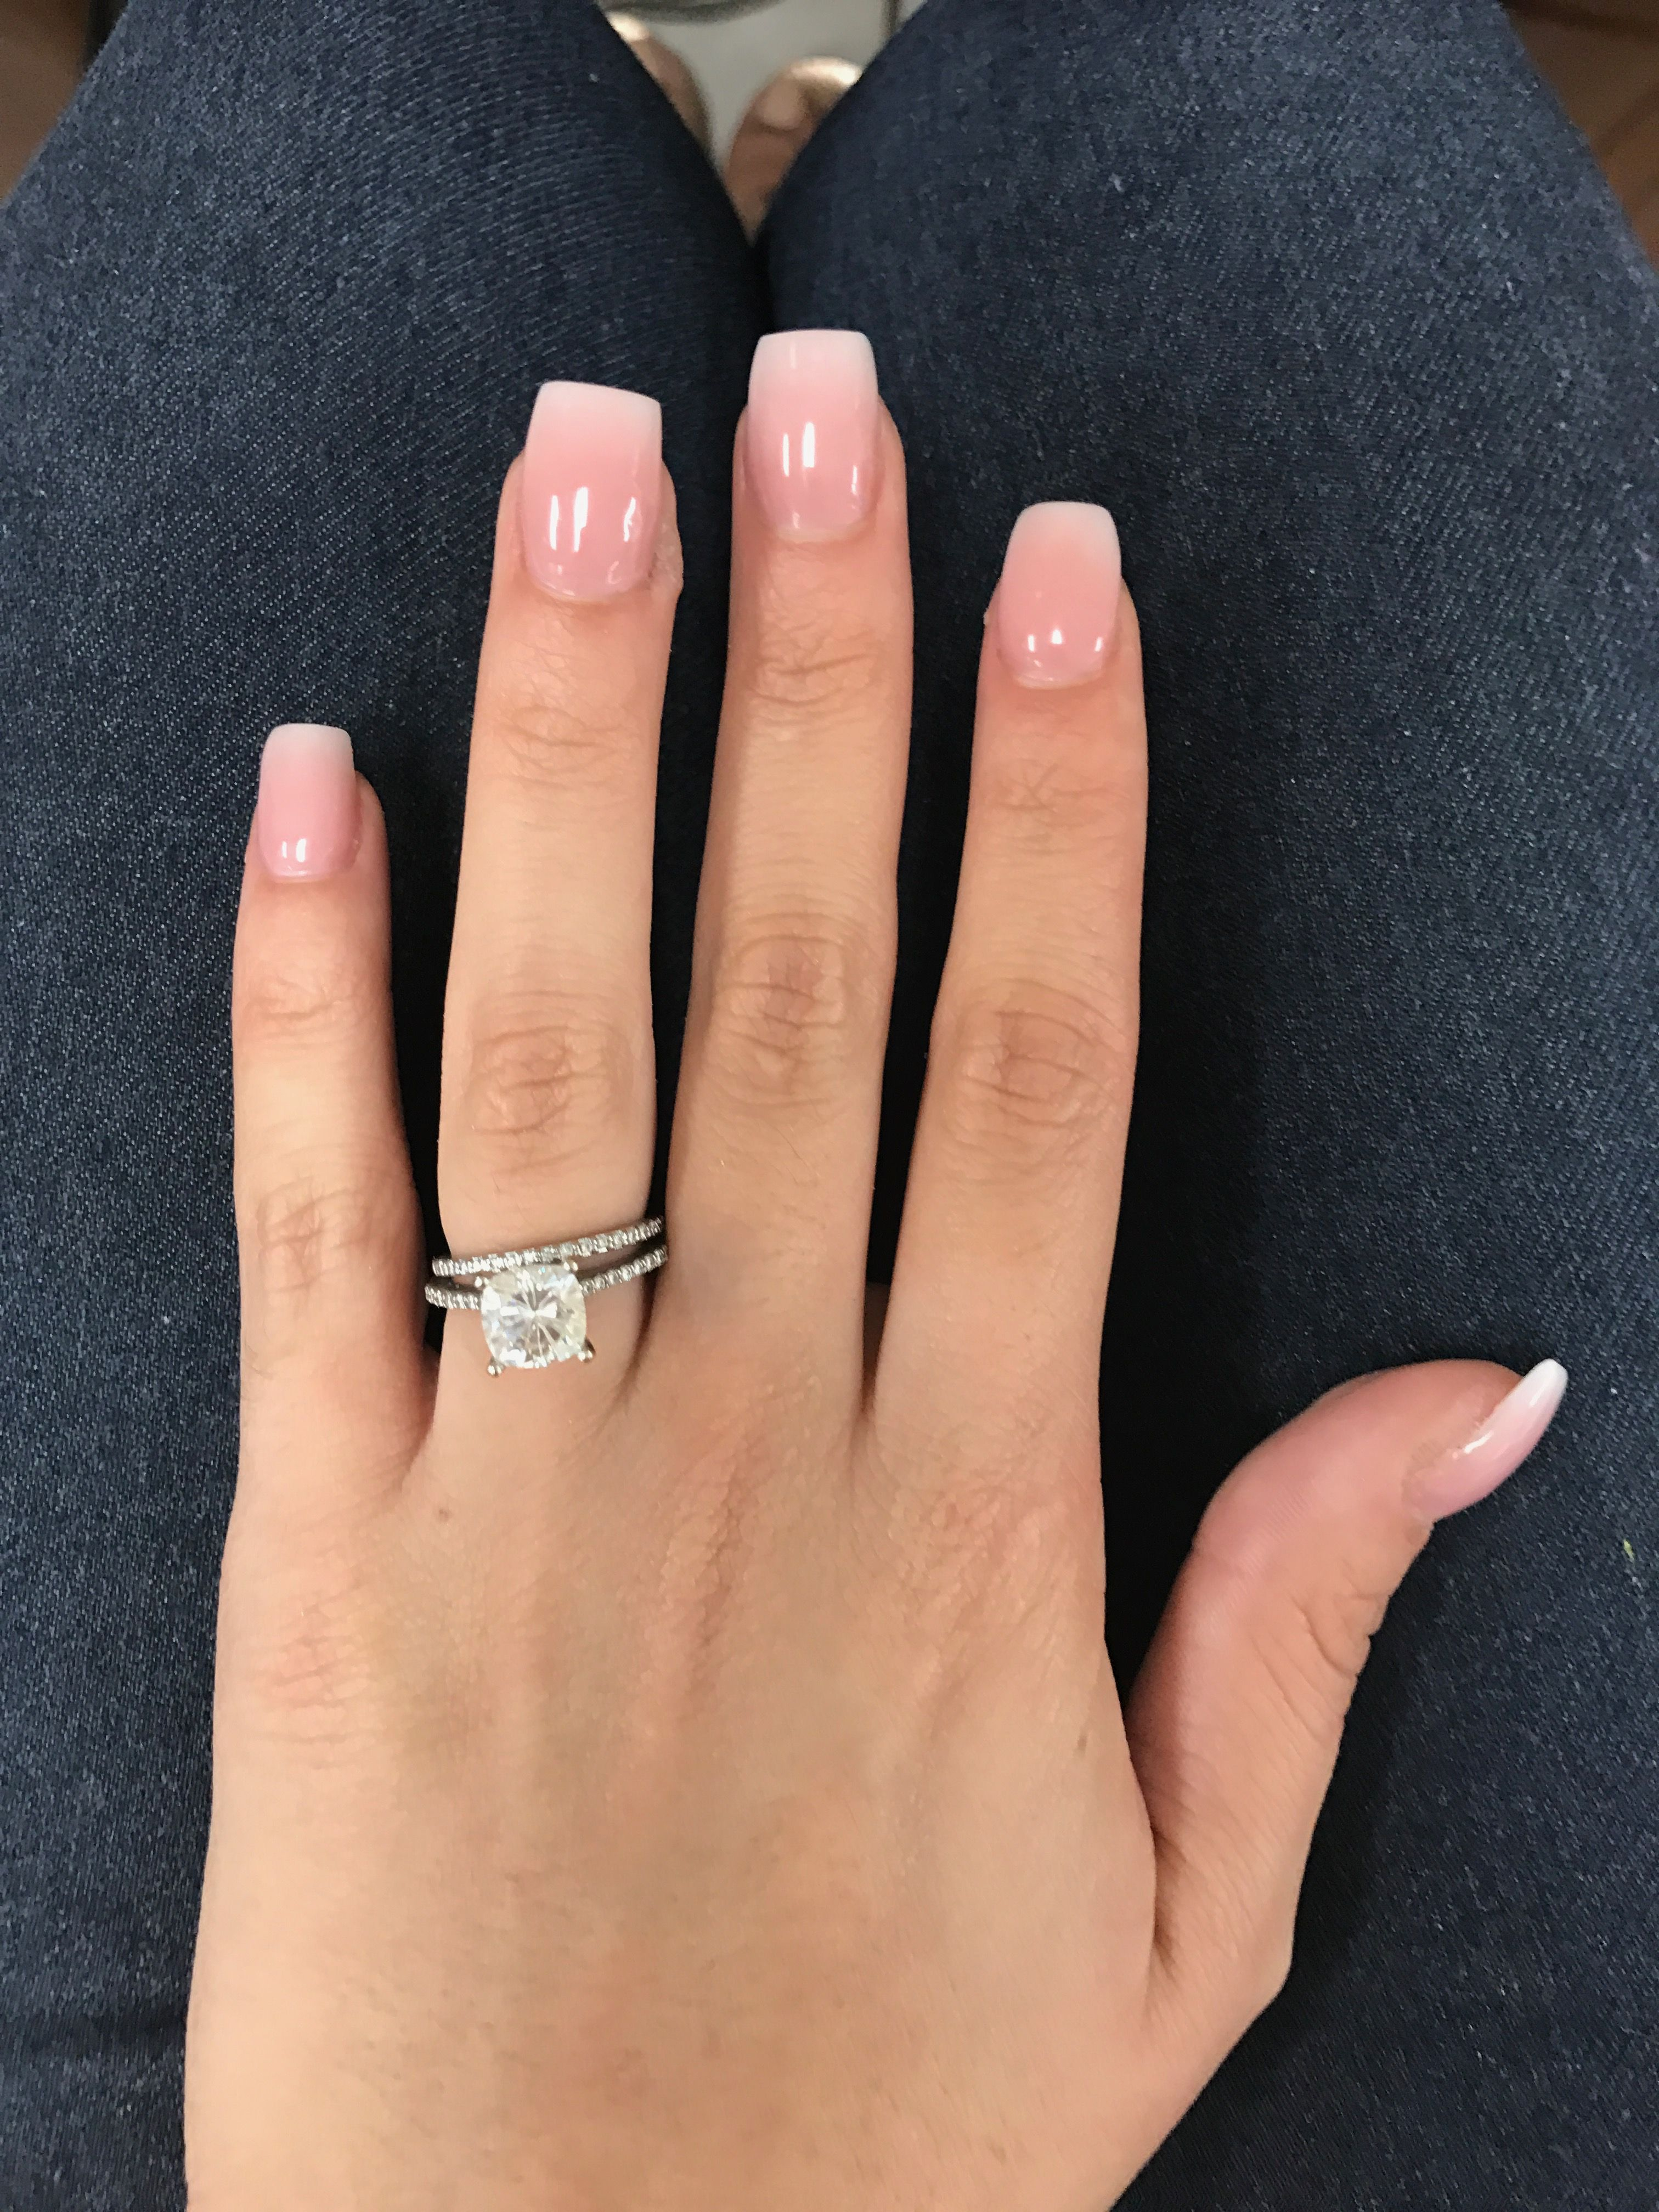 Love my new nails. Pink and white ombr powder | nails ...